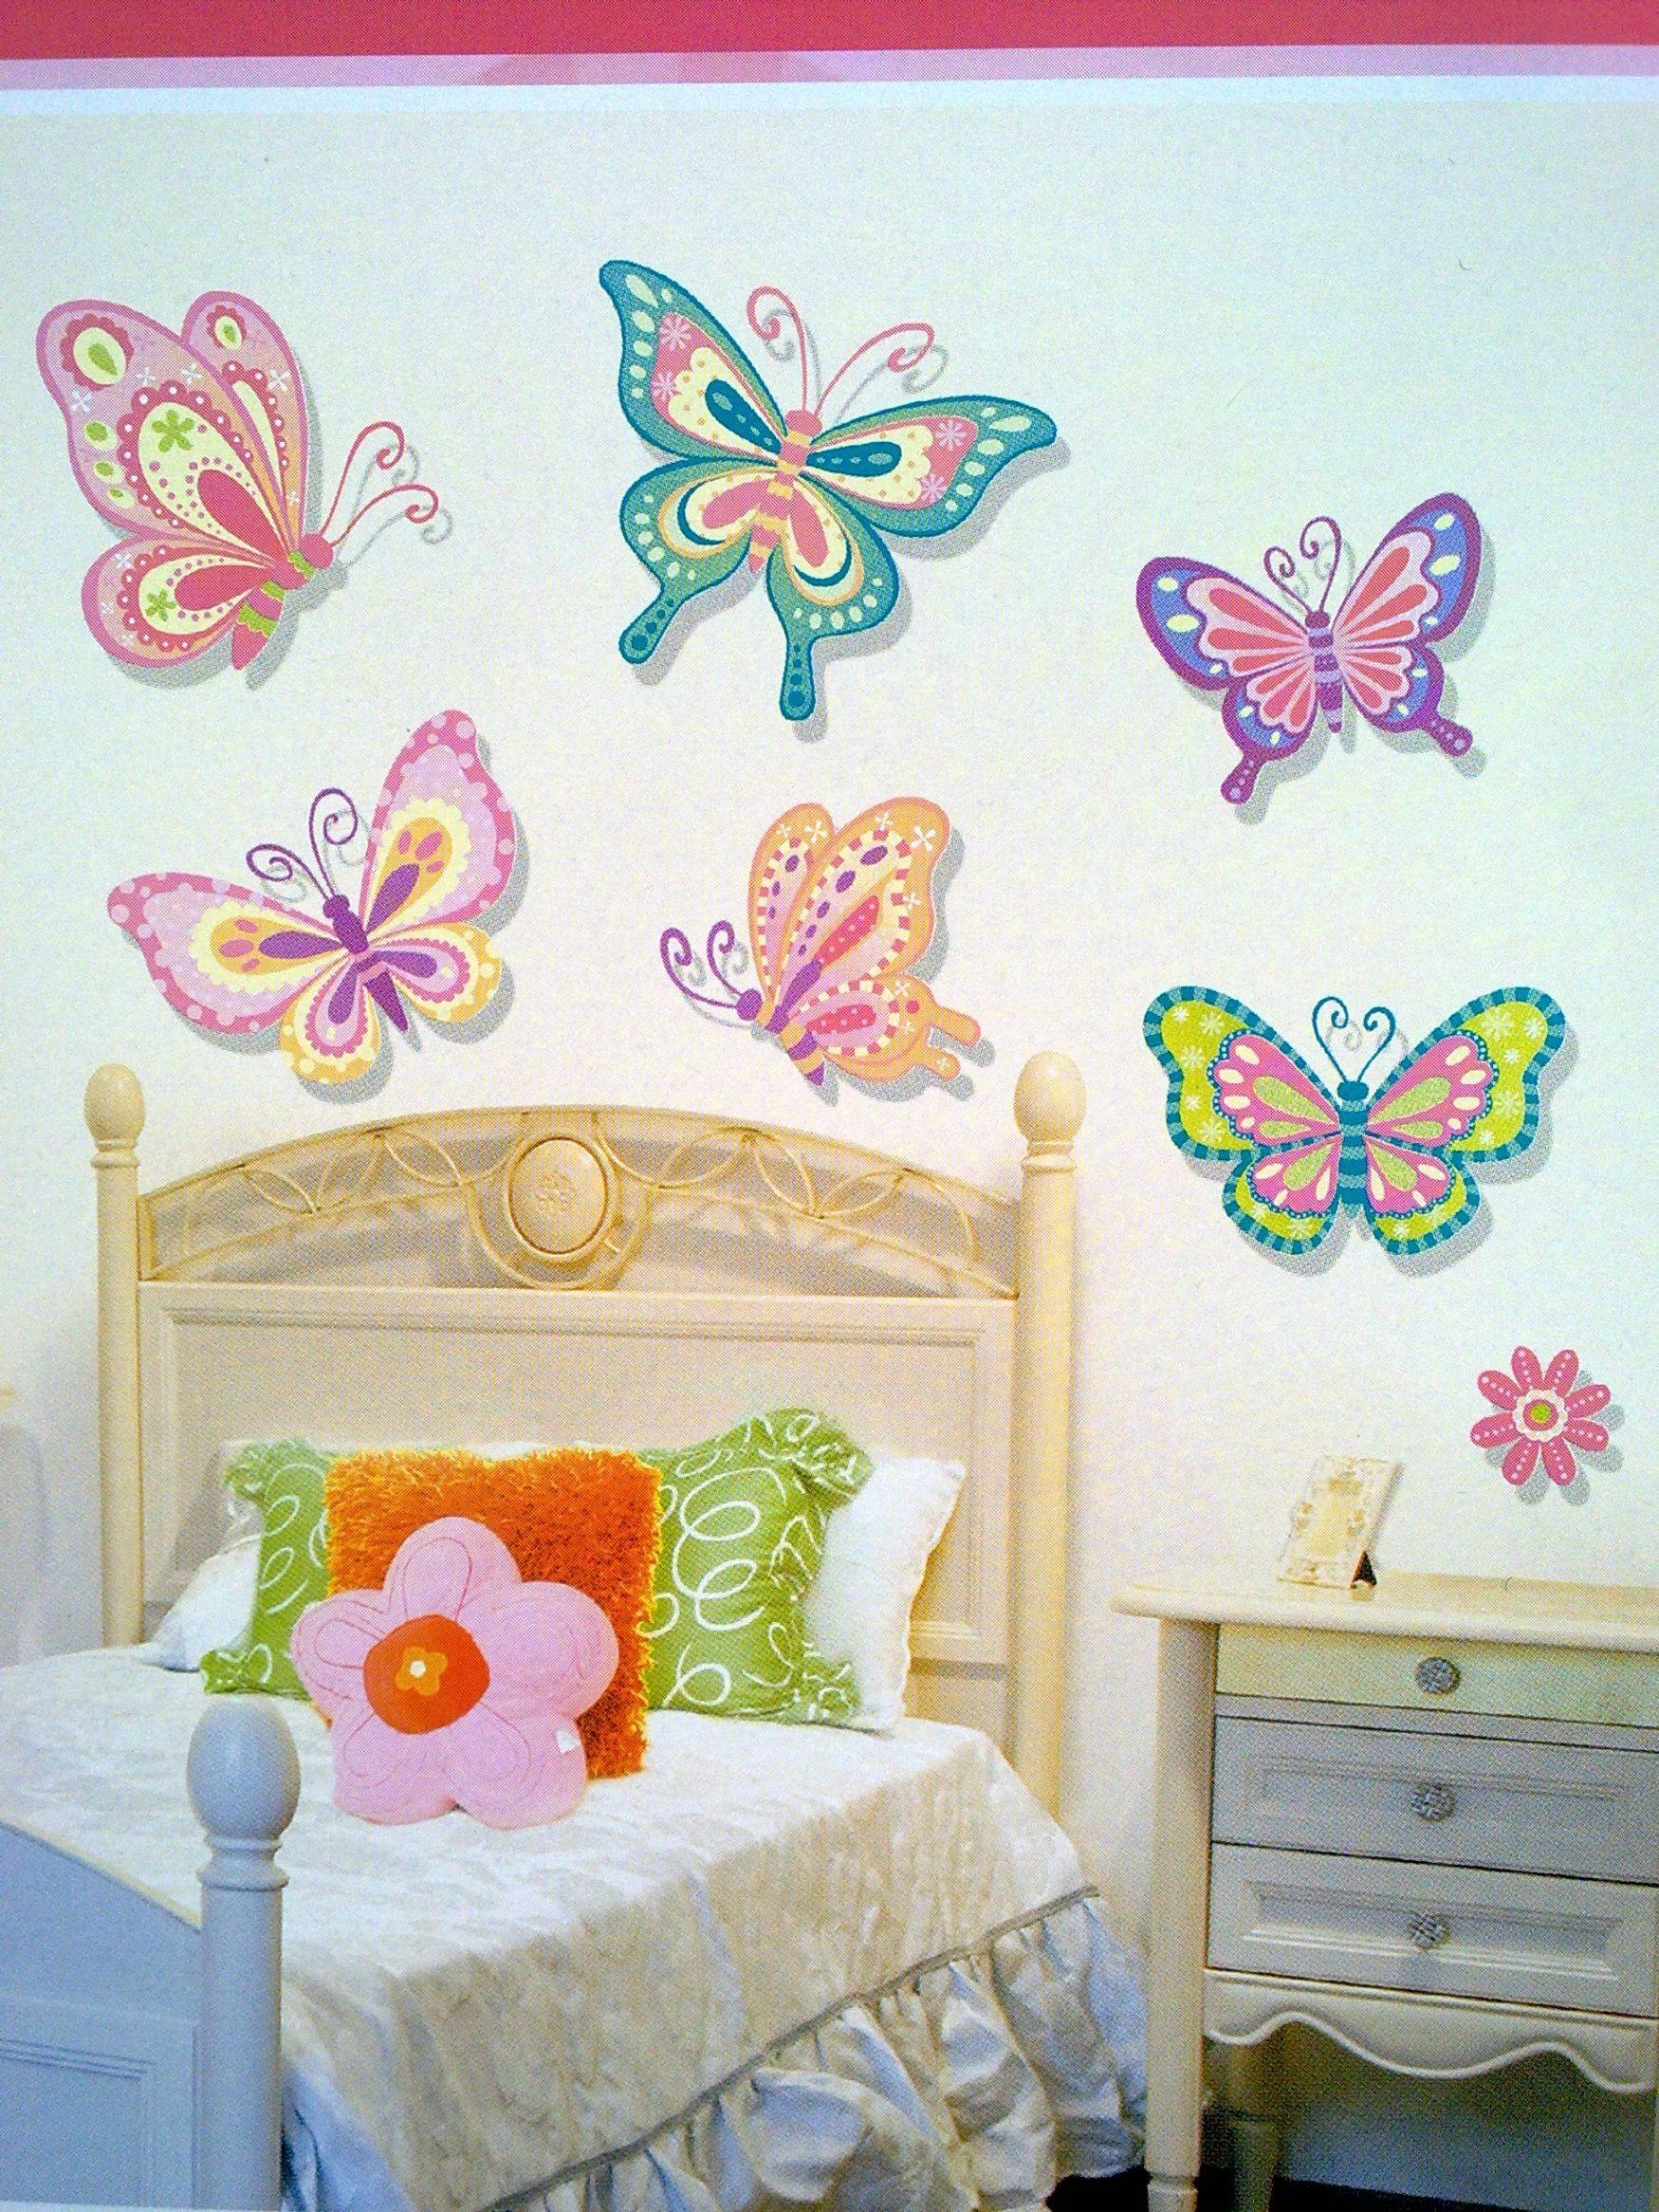 Wall Decor : Full Wall Decals Butterfly Wall Stickers Wall Art With Most Current Fabric Bird Wall Art (View 15 of 15)